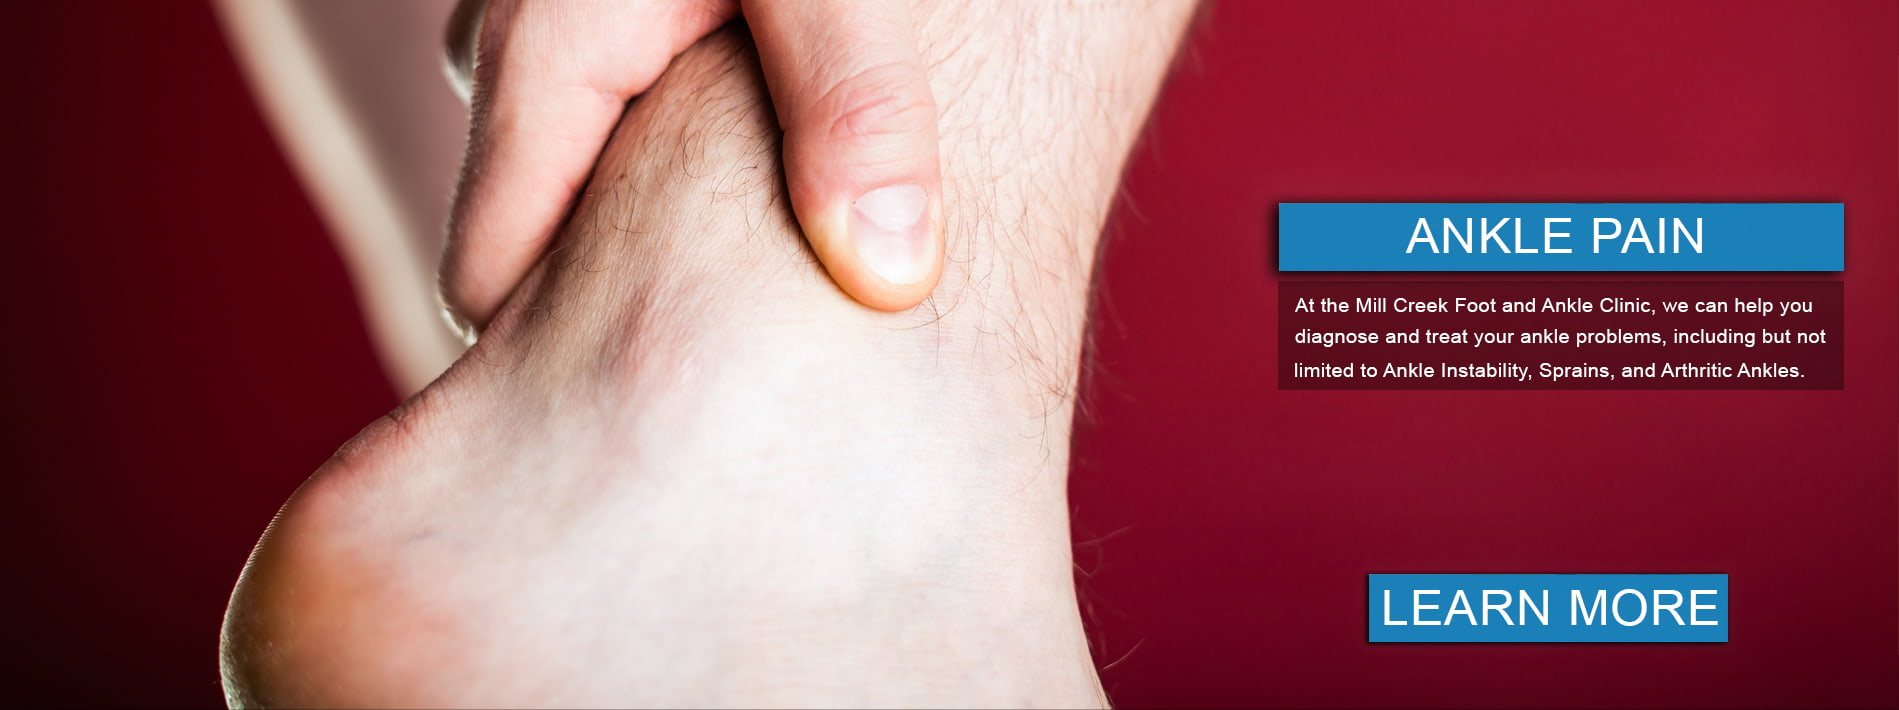 Ankle_Pain